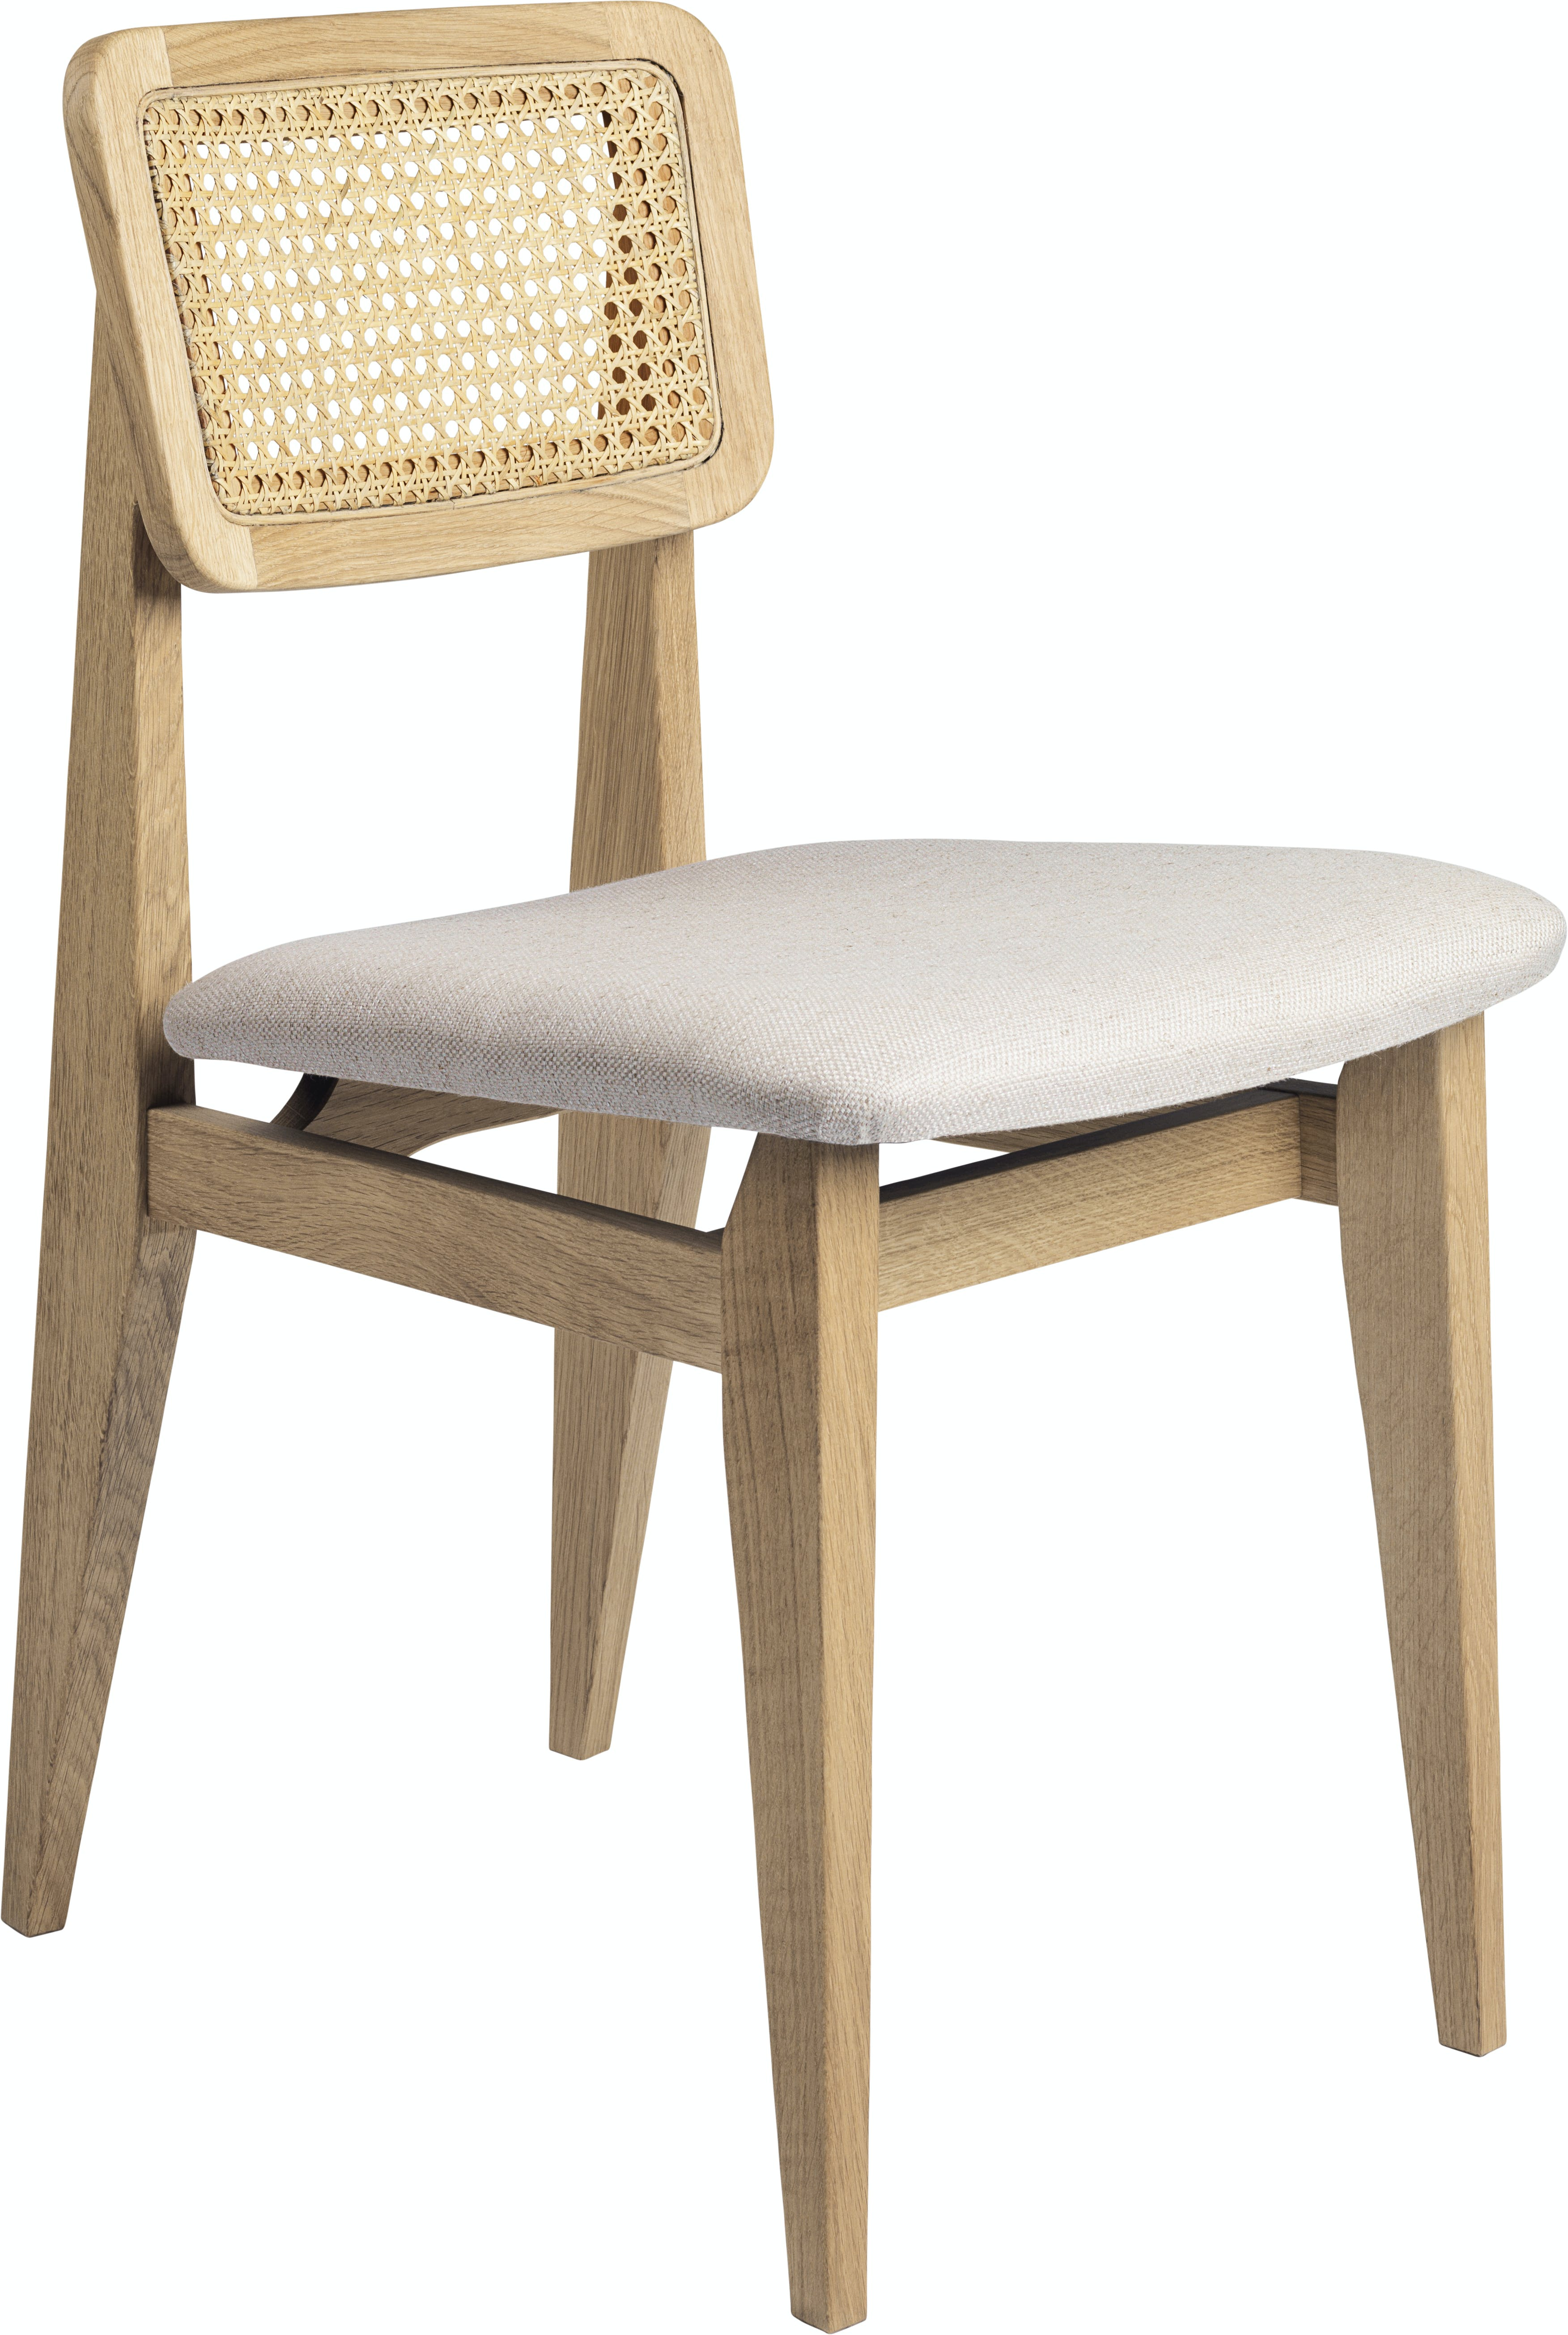 C Chair Dining Chair Wood Seat Upholstered French Cane Oak Dedar Sinequanon 008 Linen F3 Q